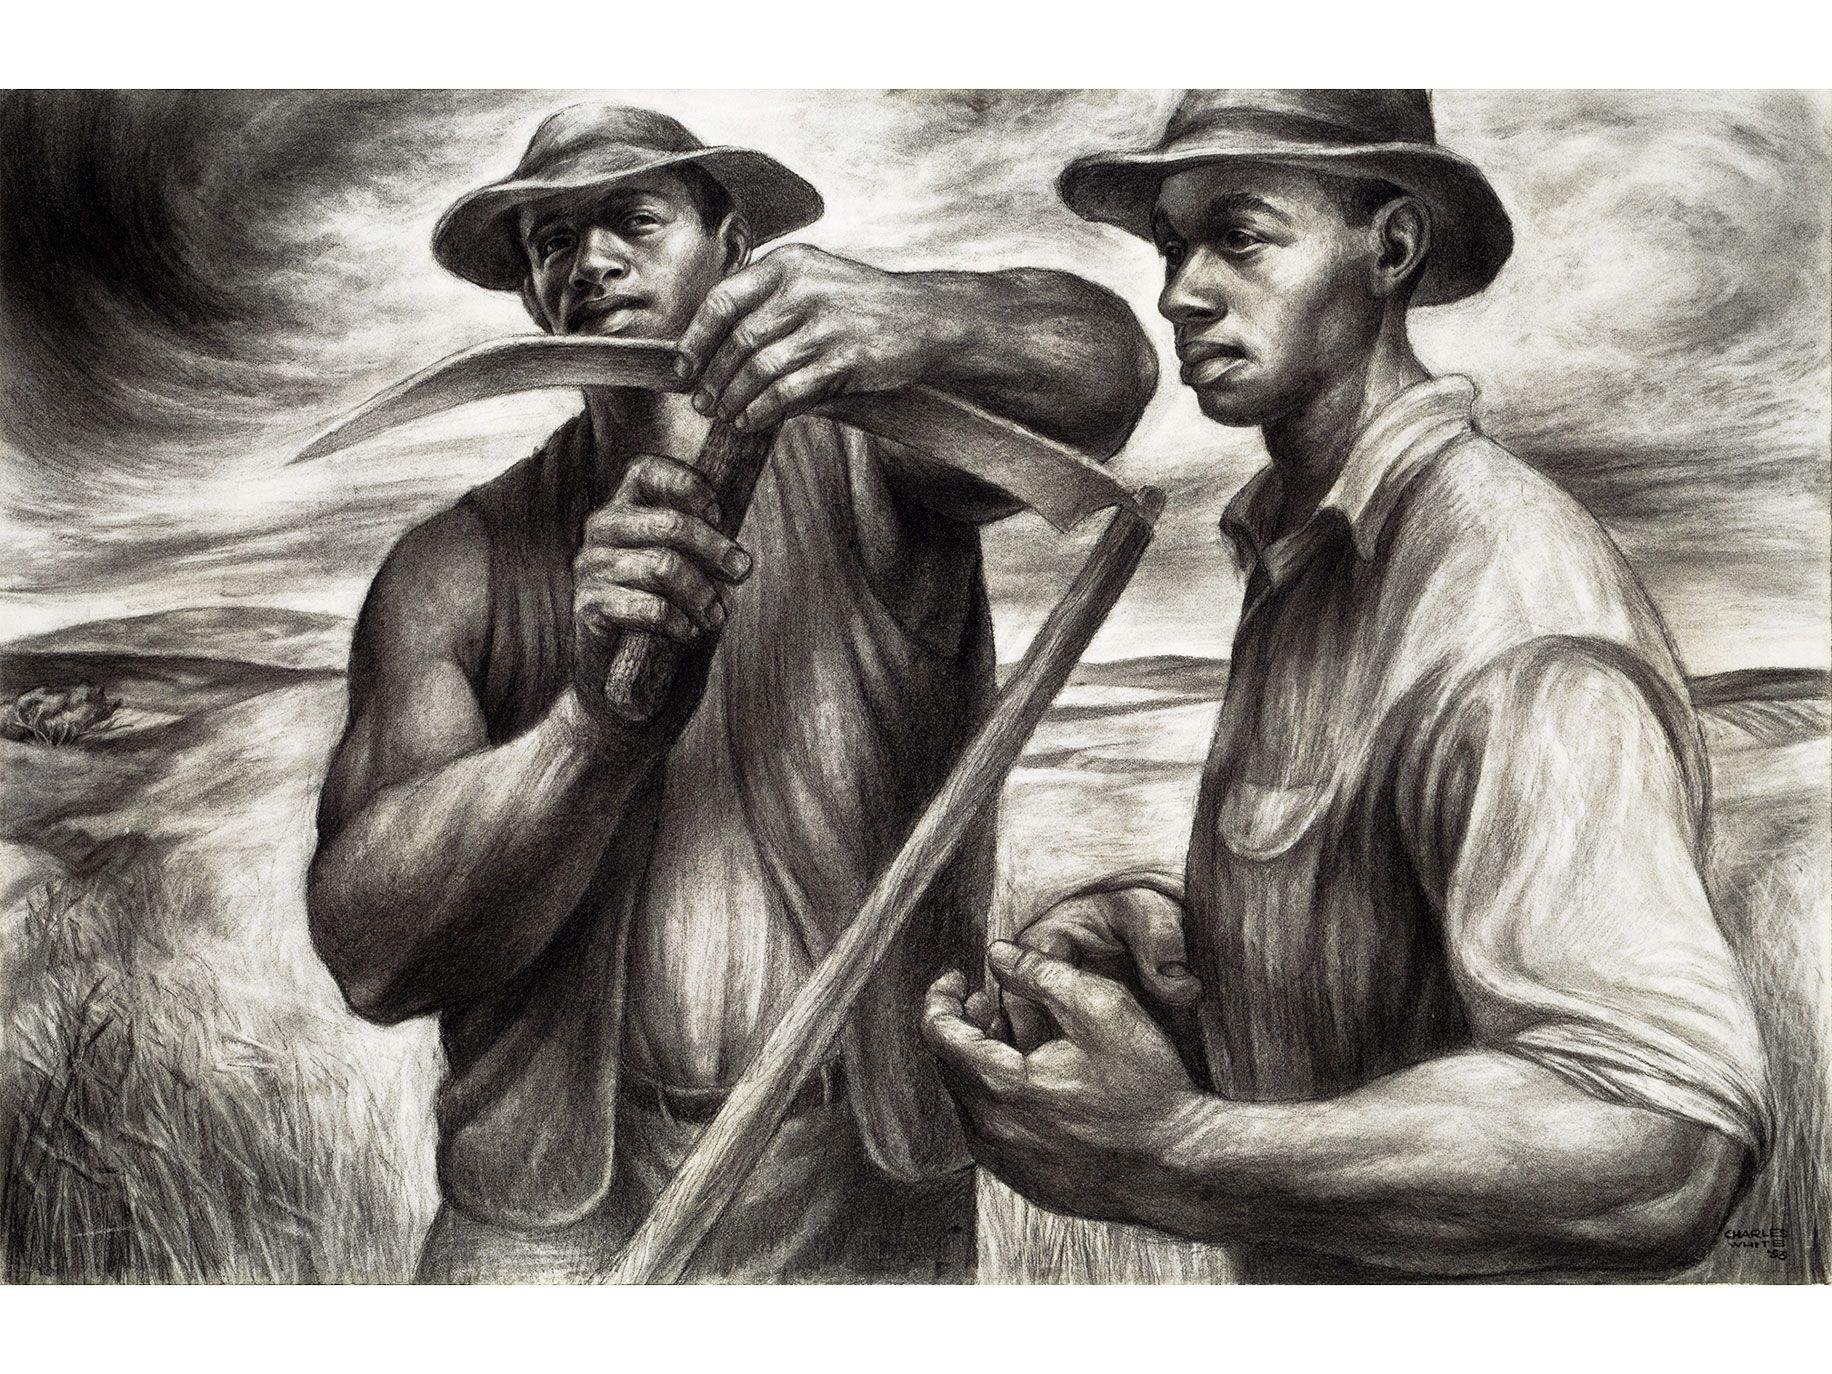 Harvest Talk (1953), by Charles White; charcoal, Wolff's carbon drawing pencil, and graphite, with stumping and erasing on ivory wood pulp laminate board. From the Art Institute of Chicago, restricted gift of Mr. and Mrs. Robert S. Hartman.